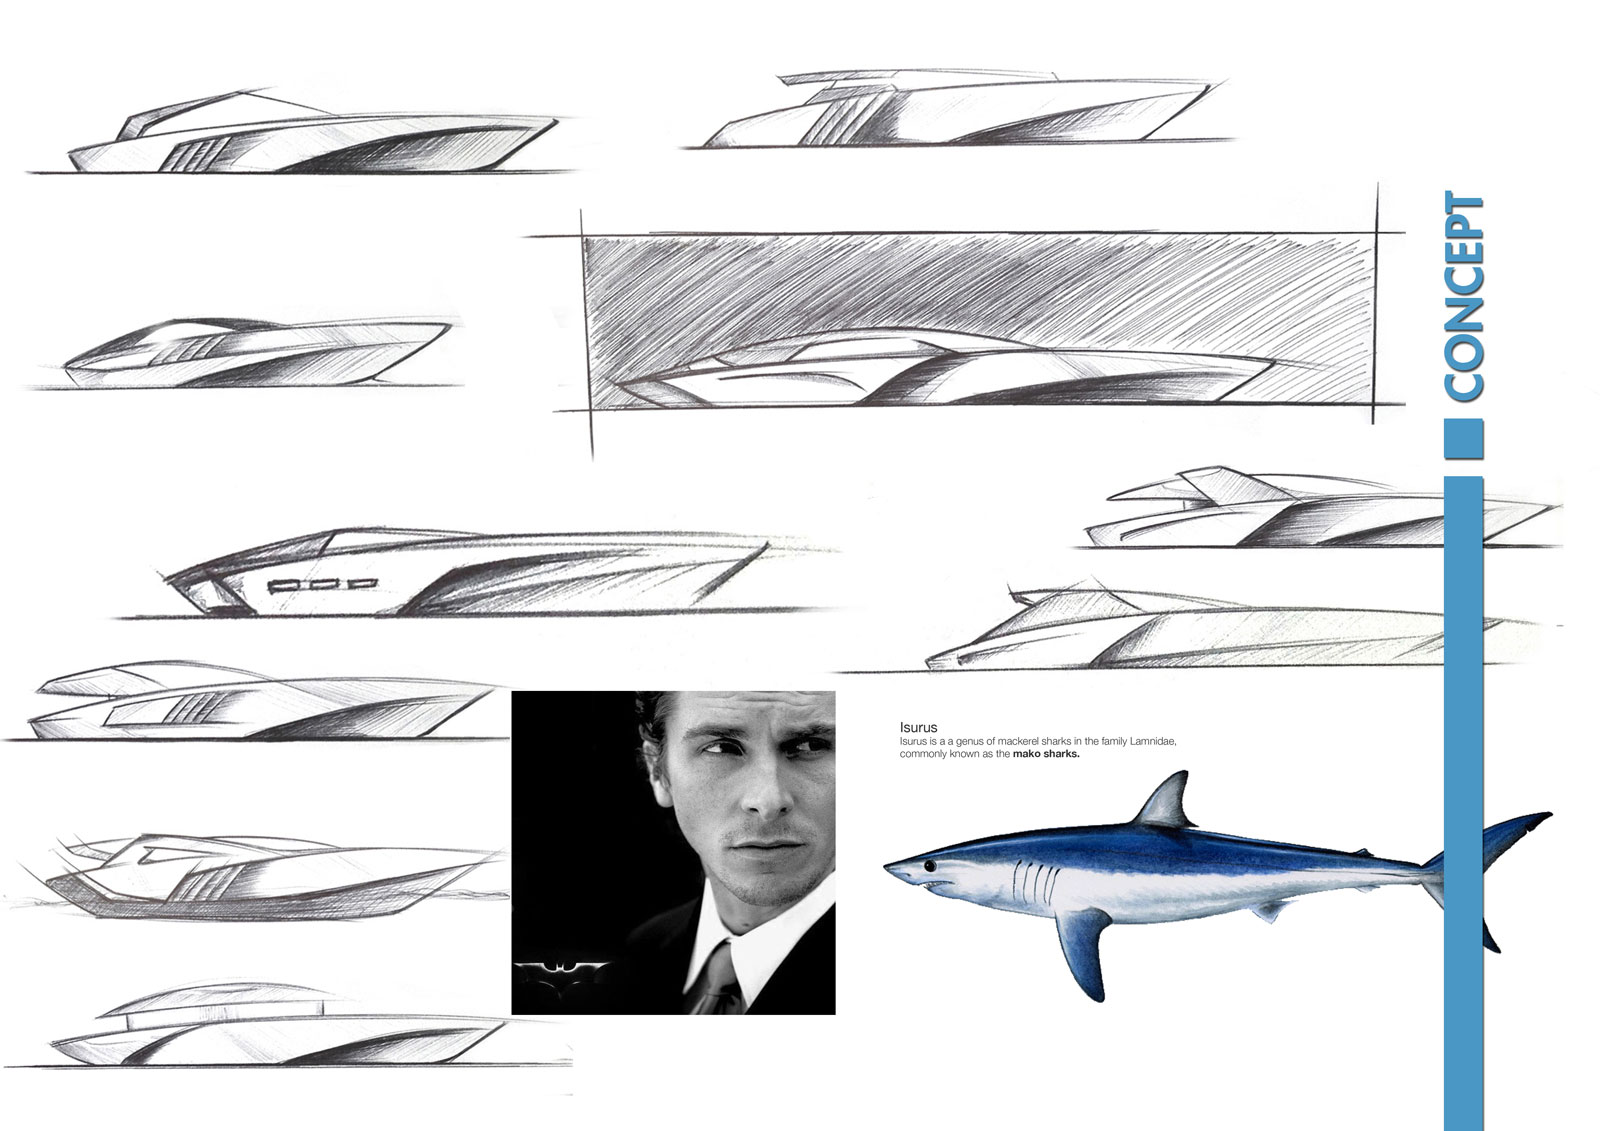 Izurus Yacht Concept Sketches and Inspiration